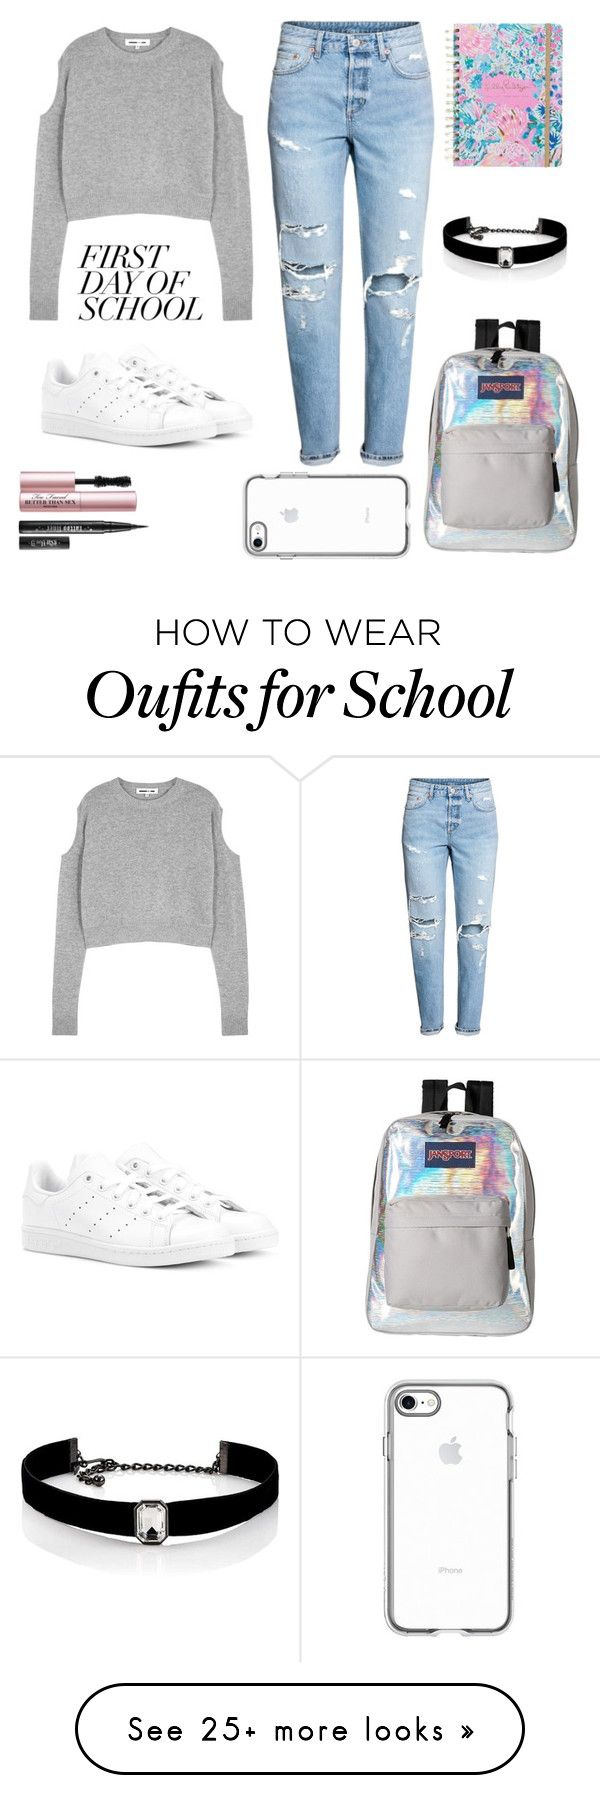 """Back to school"" by allfuckit on Polyvore featuring McQ by Alexander McQueen, H&M, adidas Originals, JanSport, Too Faced Cosmetics, Kenneth Jay Lane, Lilly Pulitzer and BackToSchool"